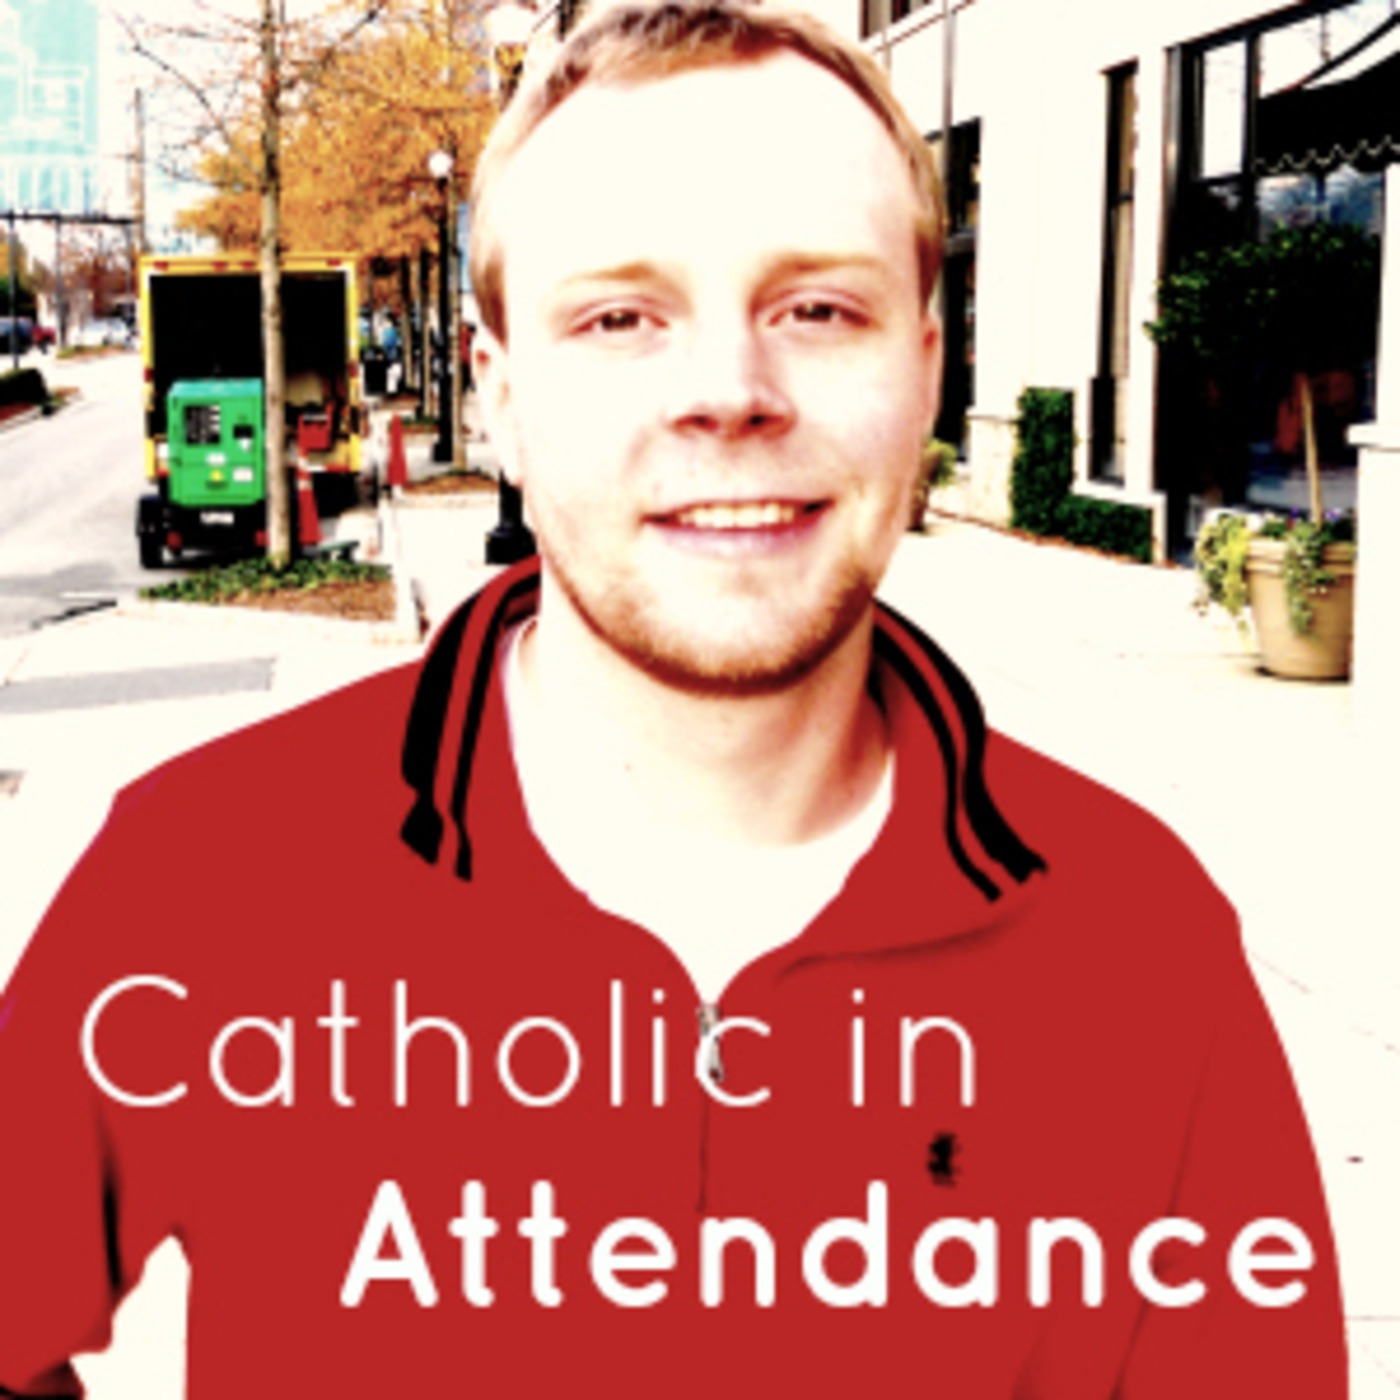 Catholic in Attendance